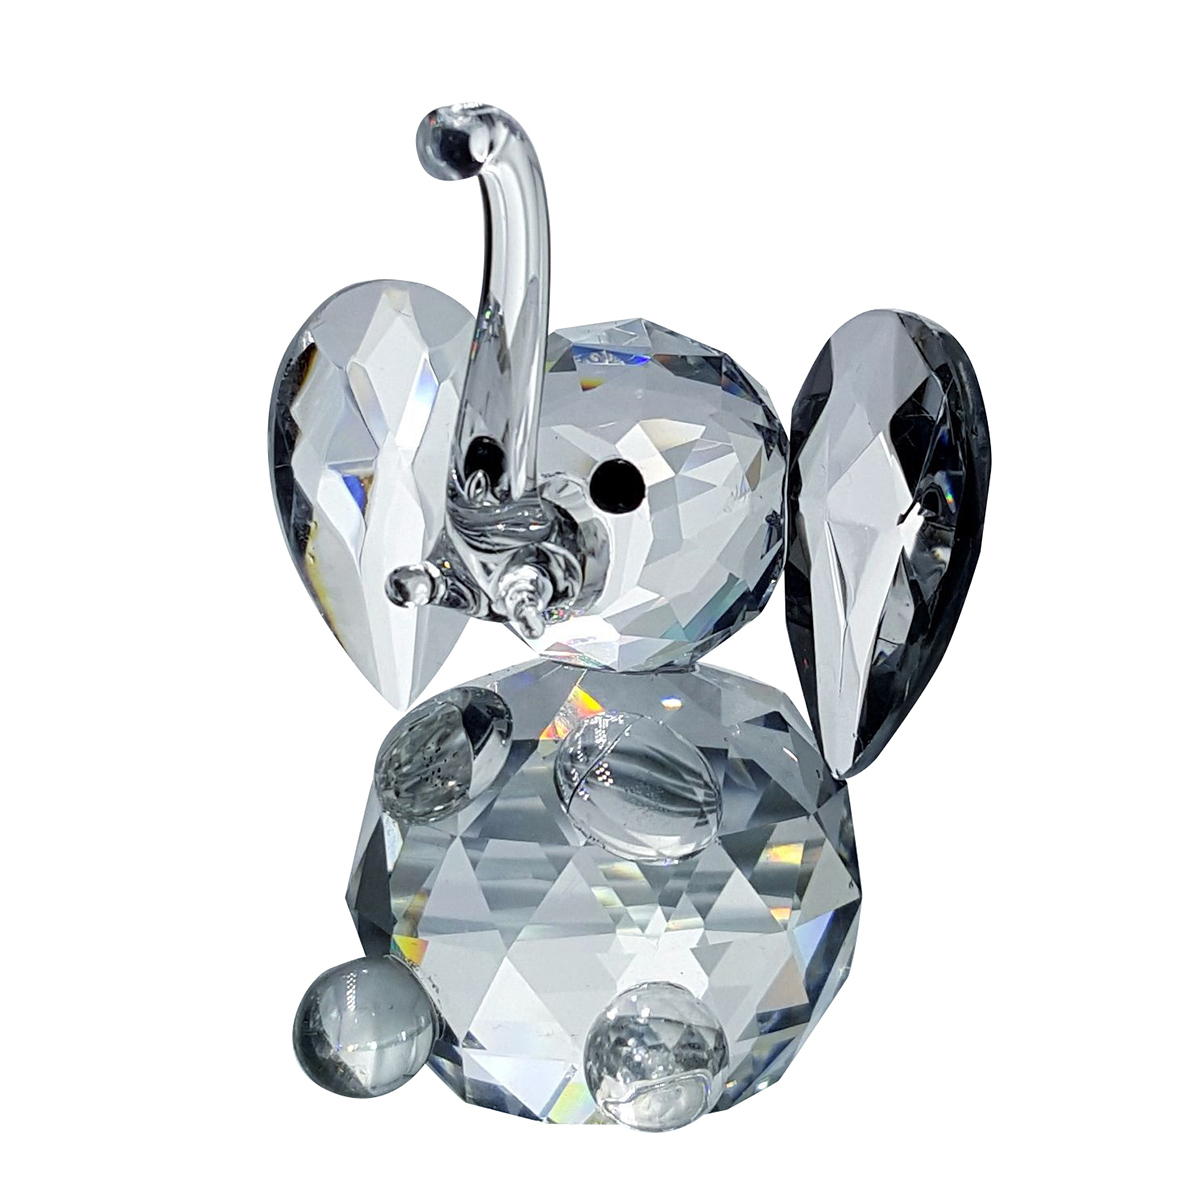 Crystal Sitting Elephant Figurine